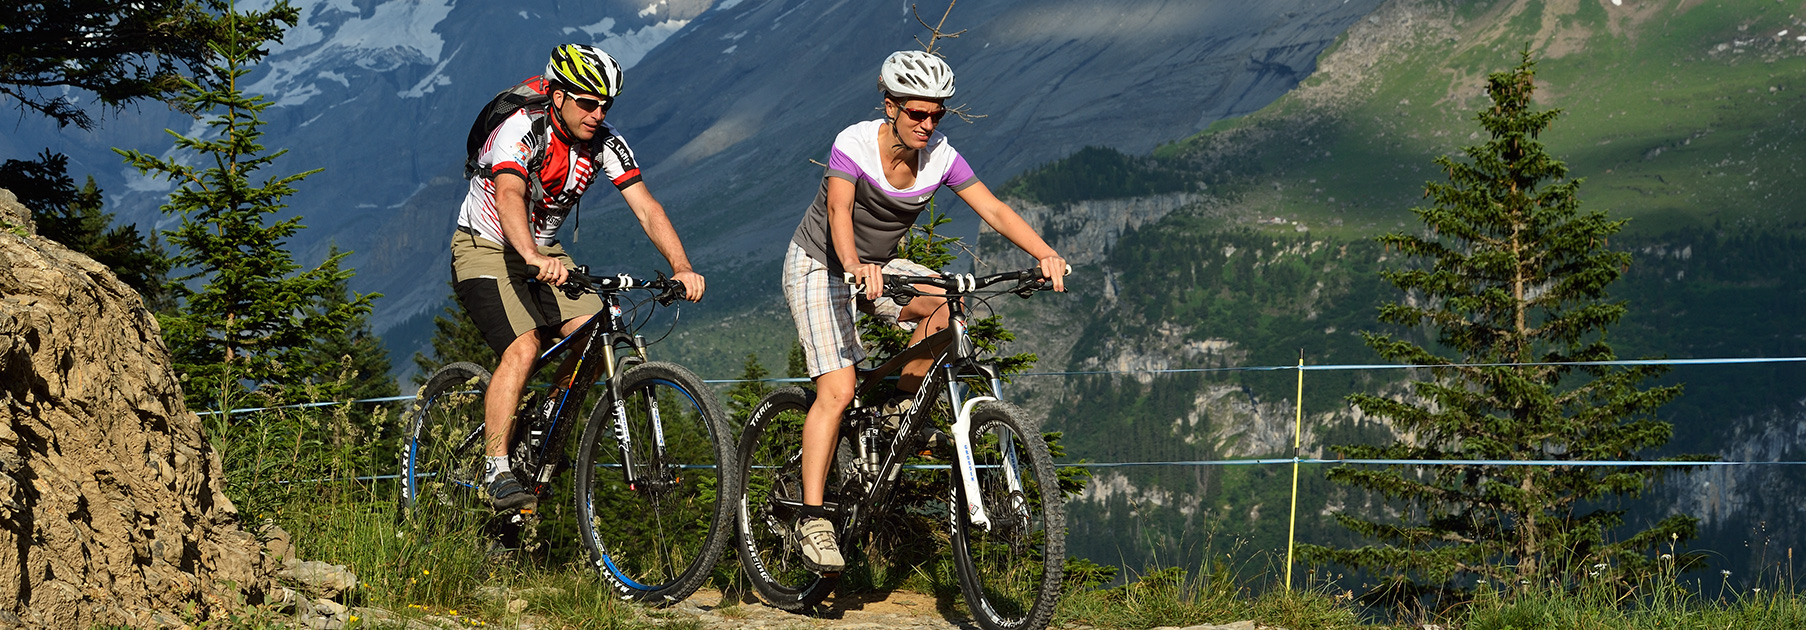 Intersport Sport Mountain Biking